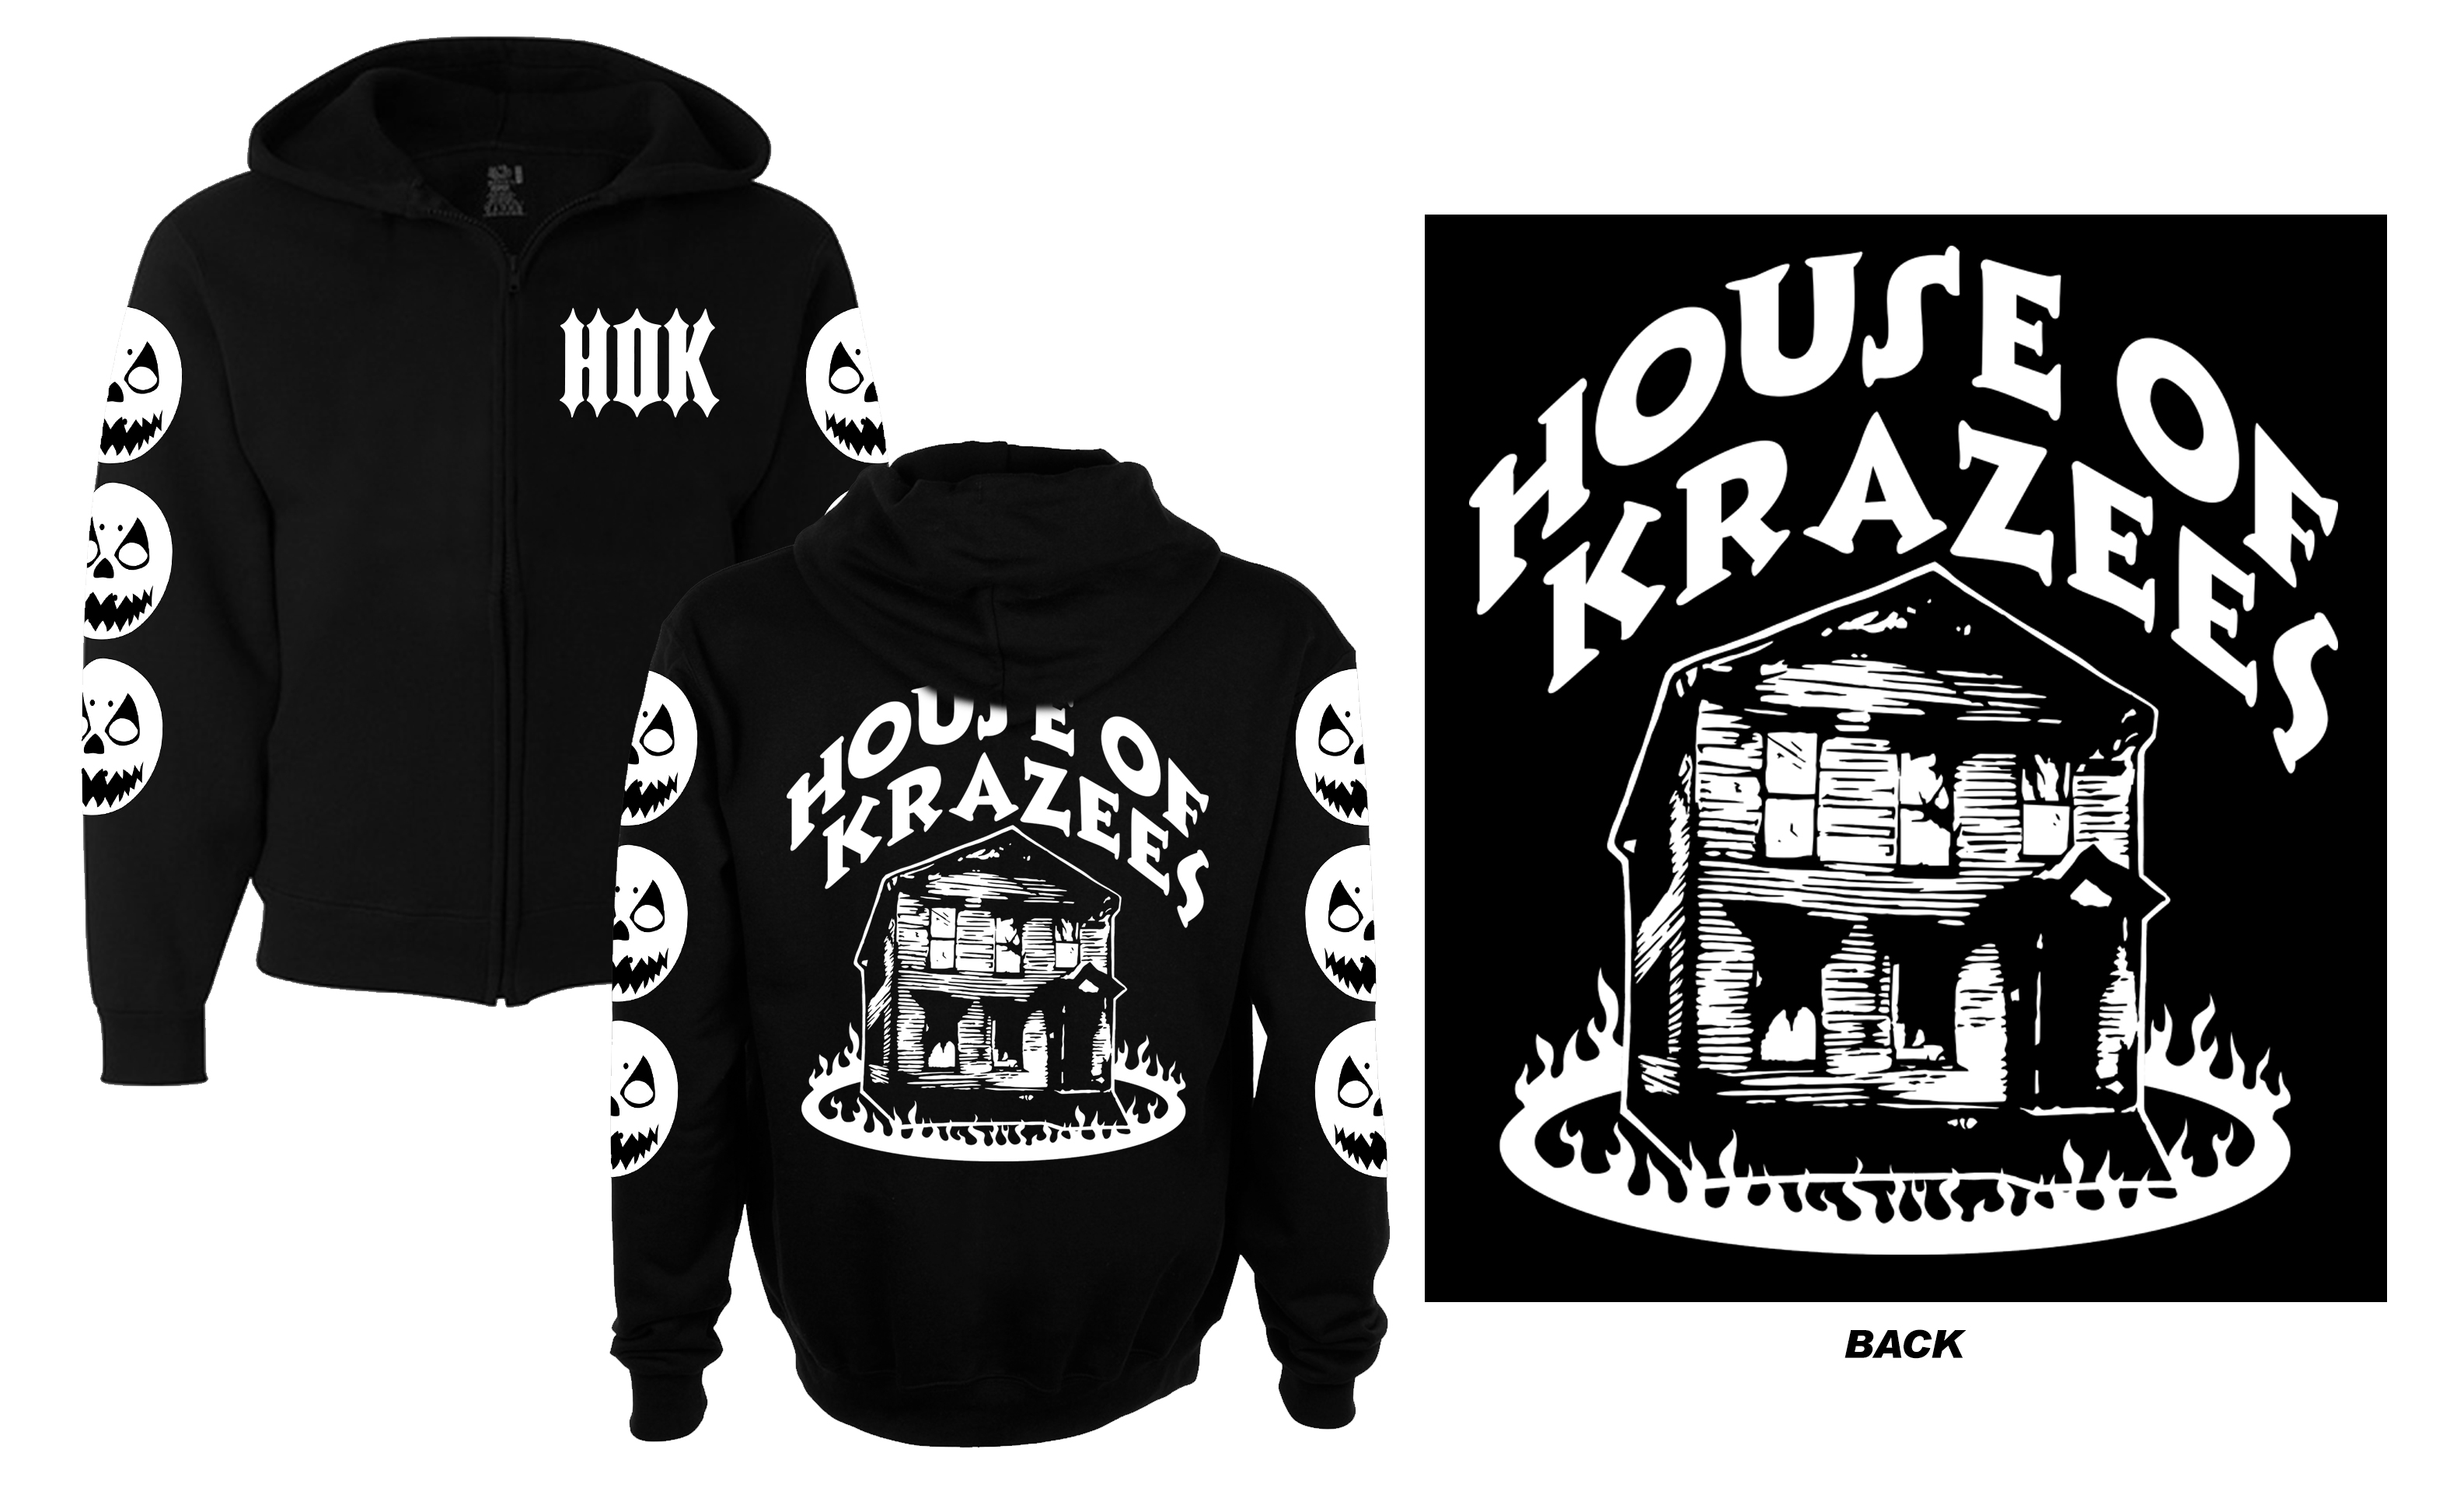 HOK Haunted House Throwback Zip Up Hoodie